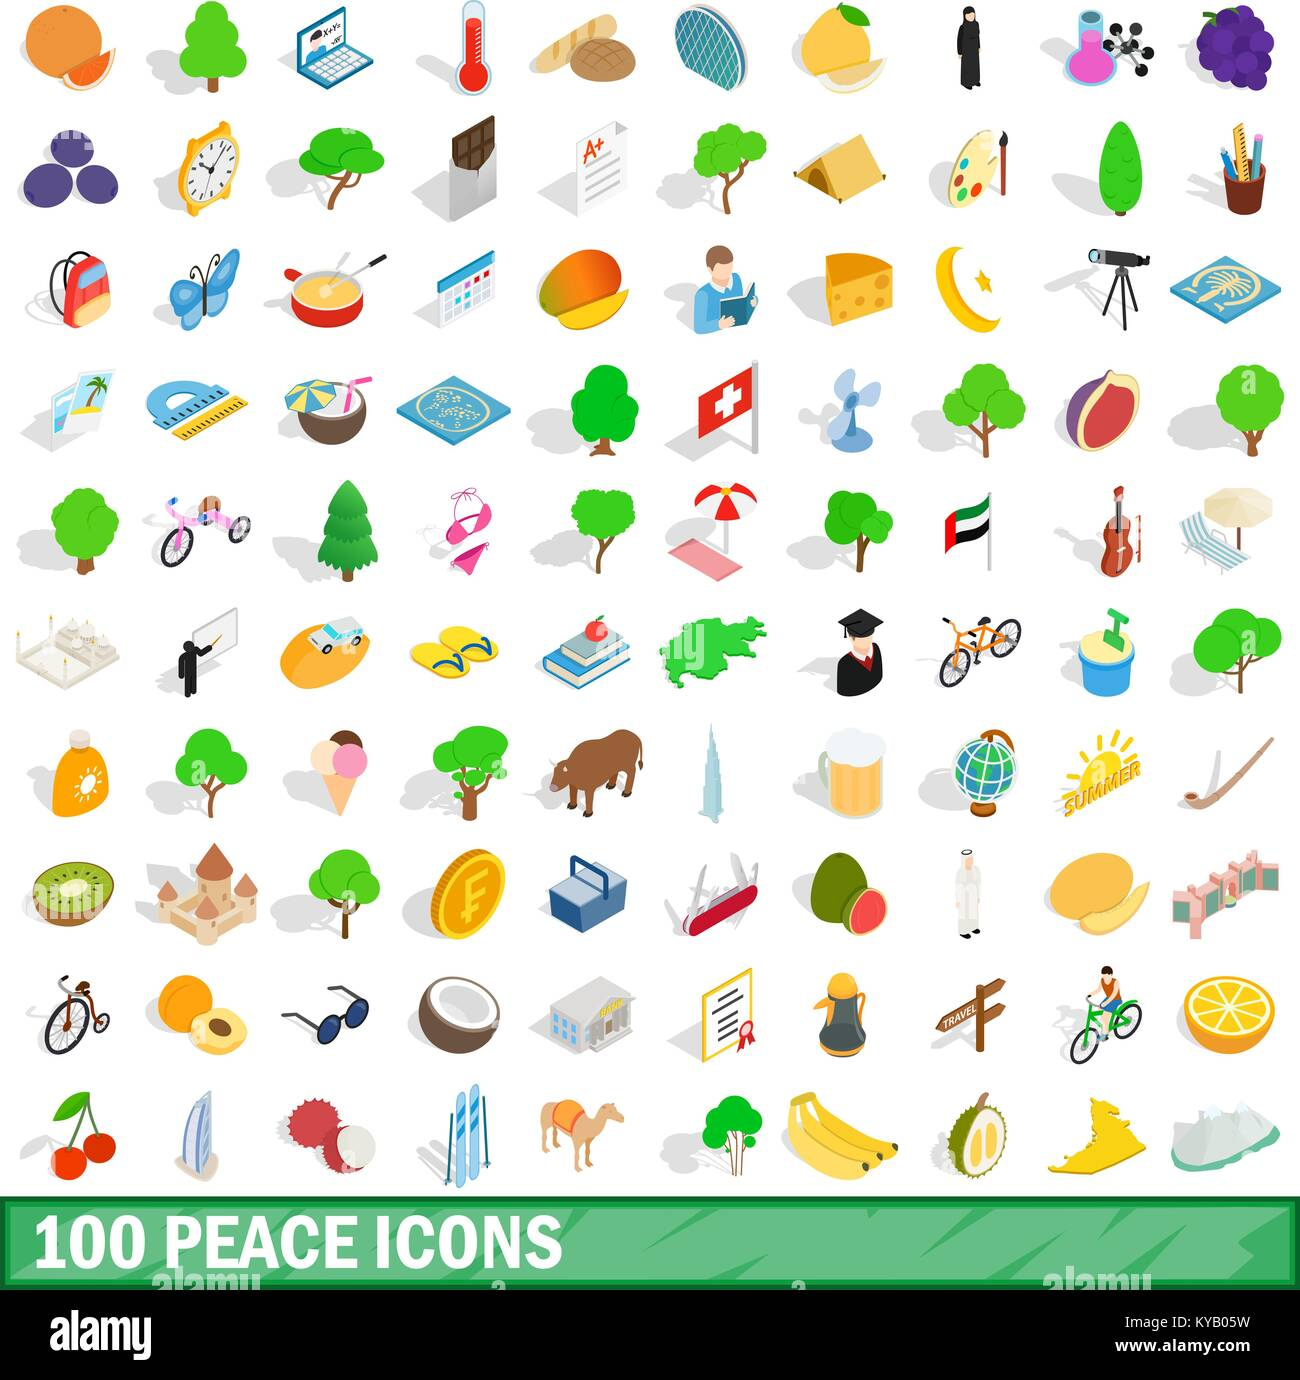 100 peace icons set in isometric 3d style for any design vector illustration Stock Vector